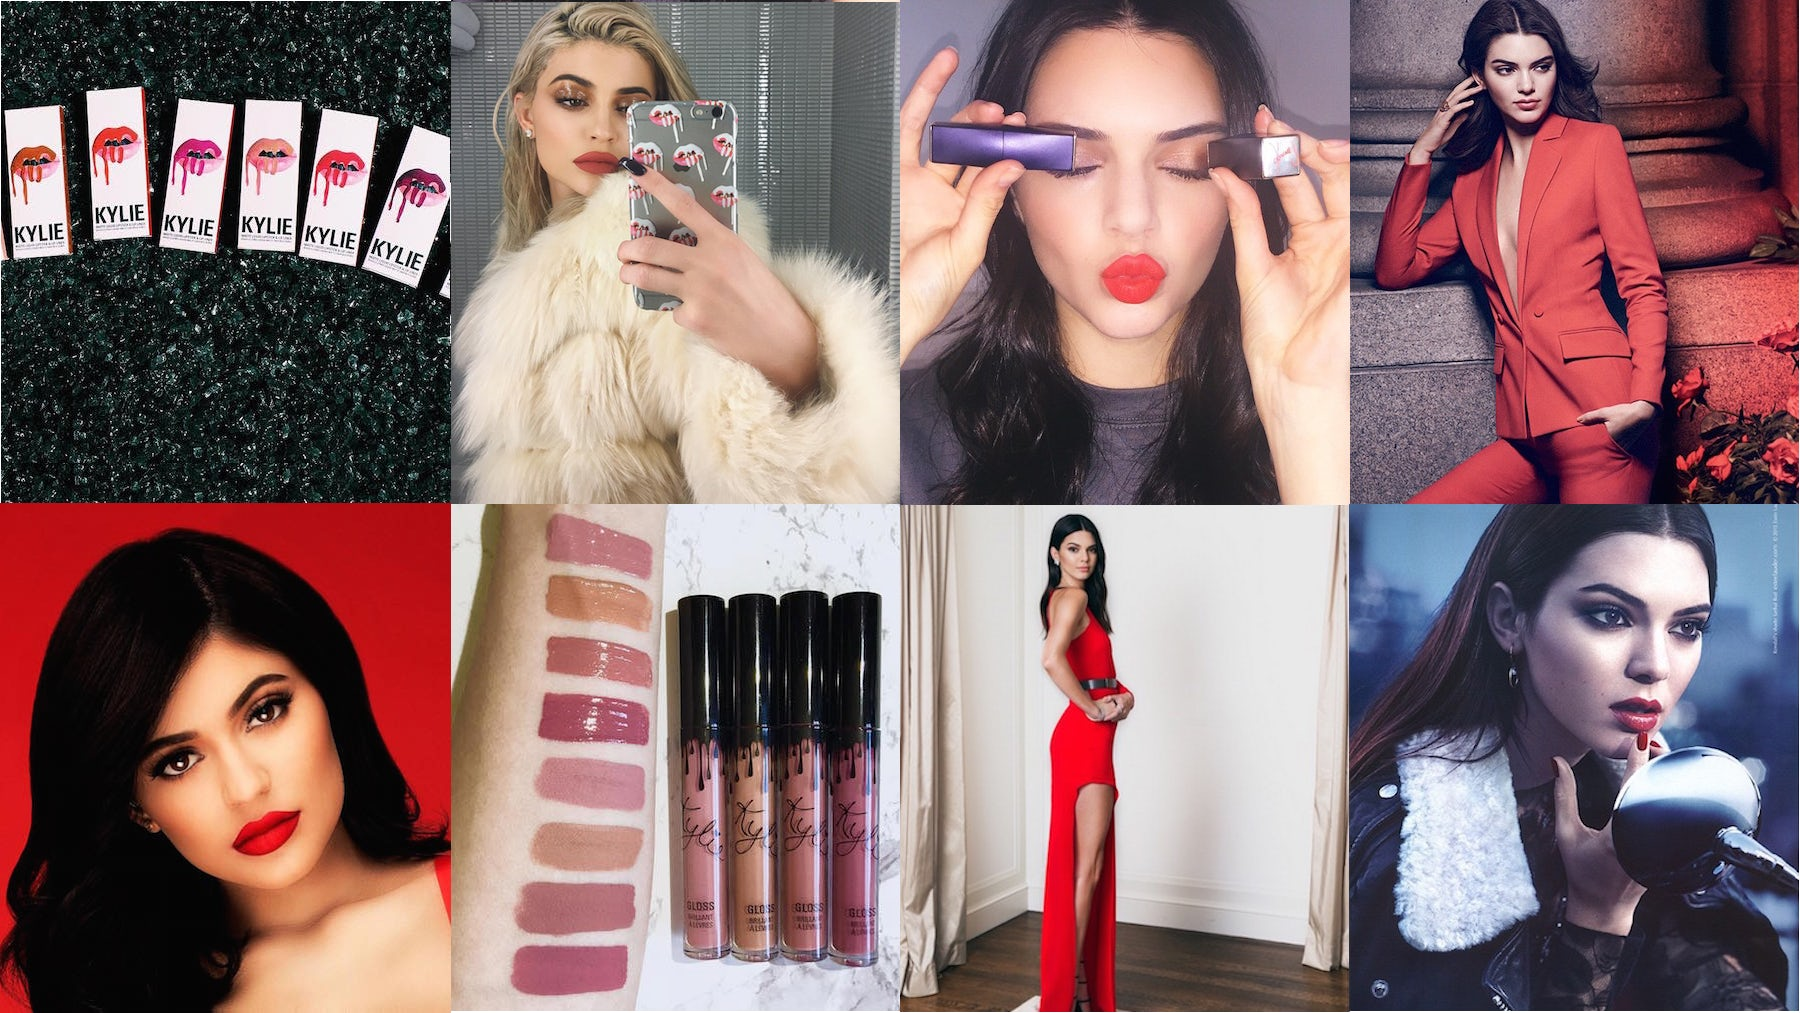 Kendall vs Kylie: Whose Cosmetics Venture Is Winning Over Gen Z?